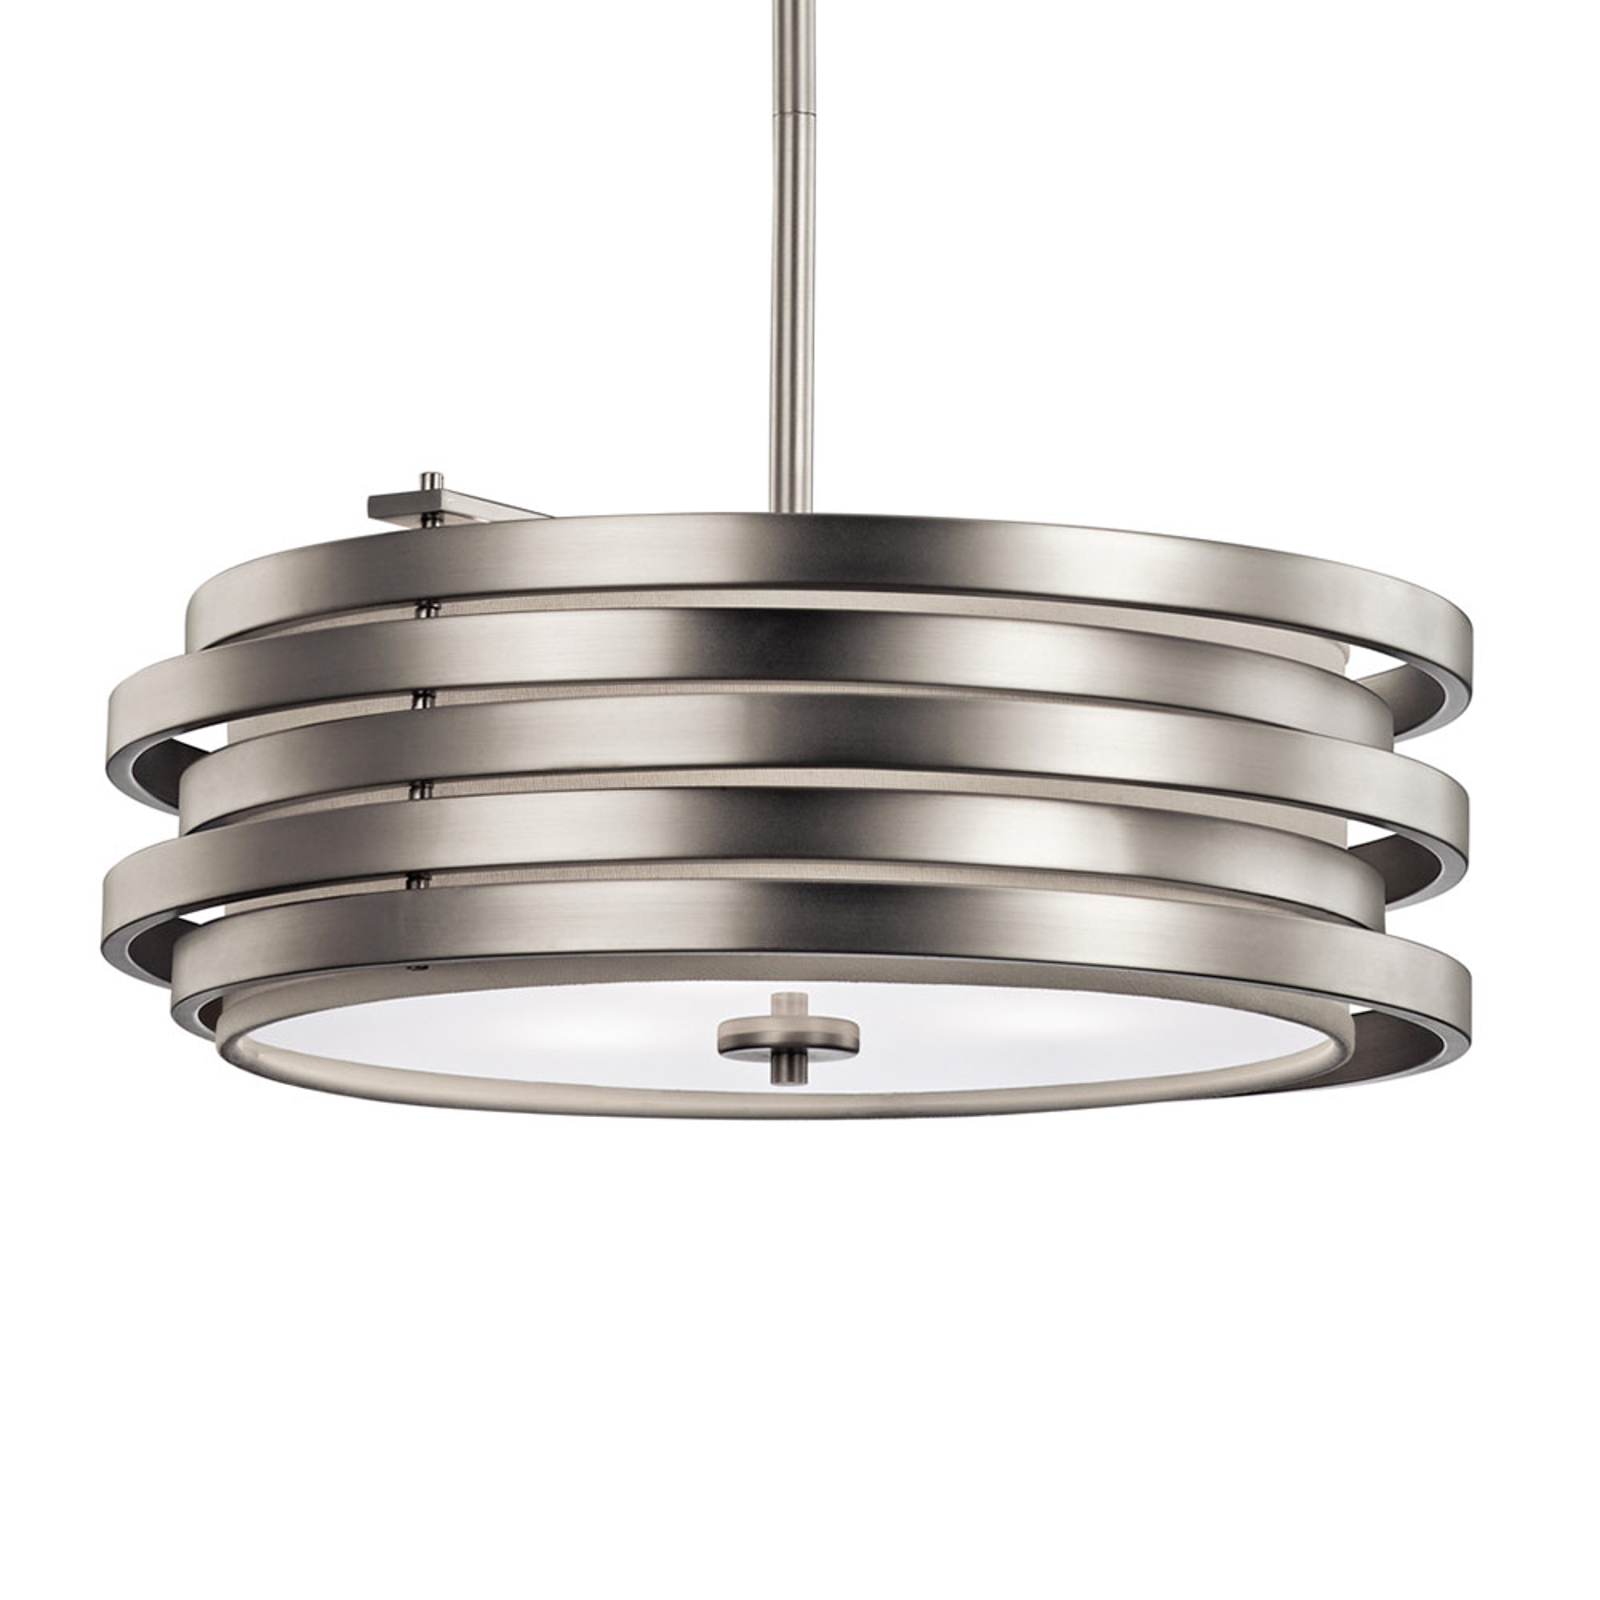 Hanglamp Roswell, ronde vorm